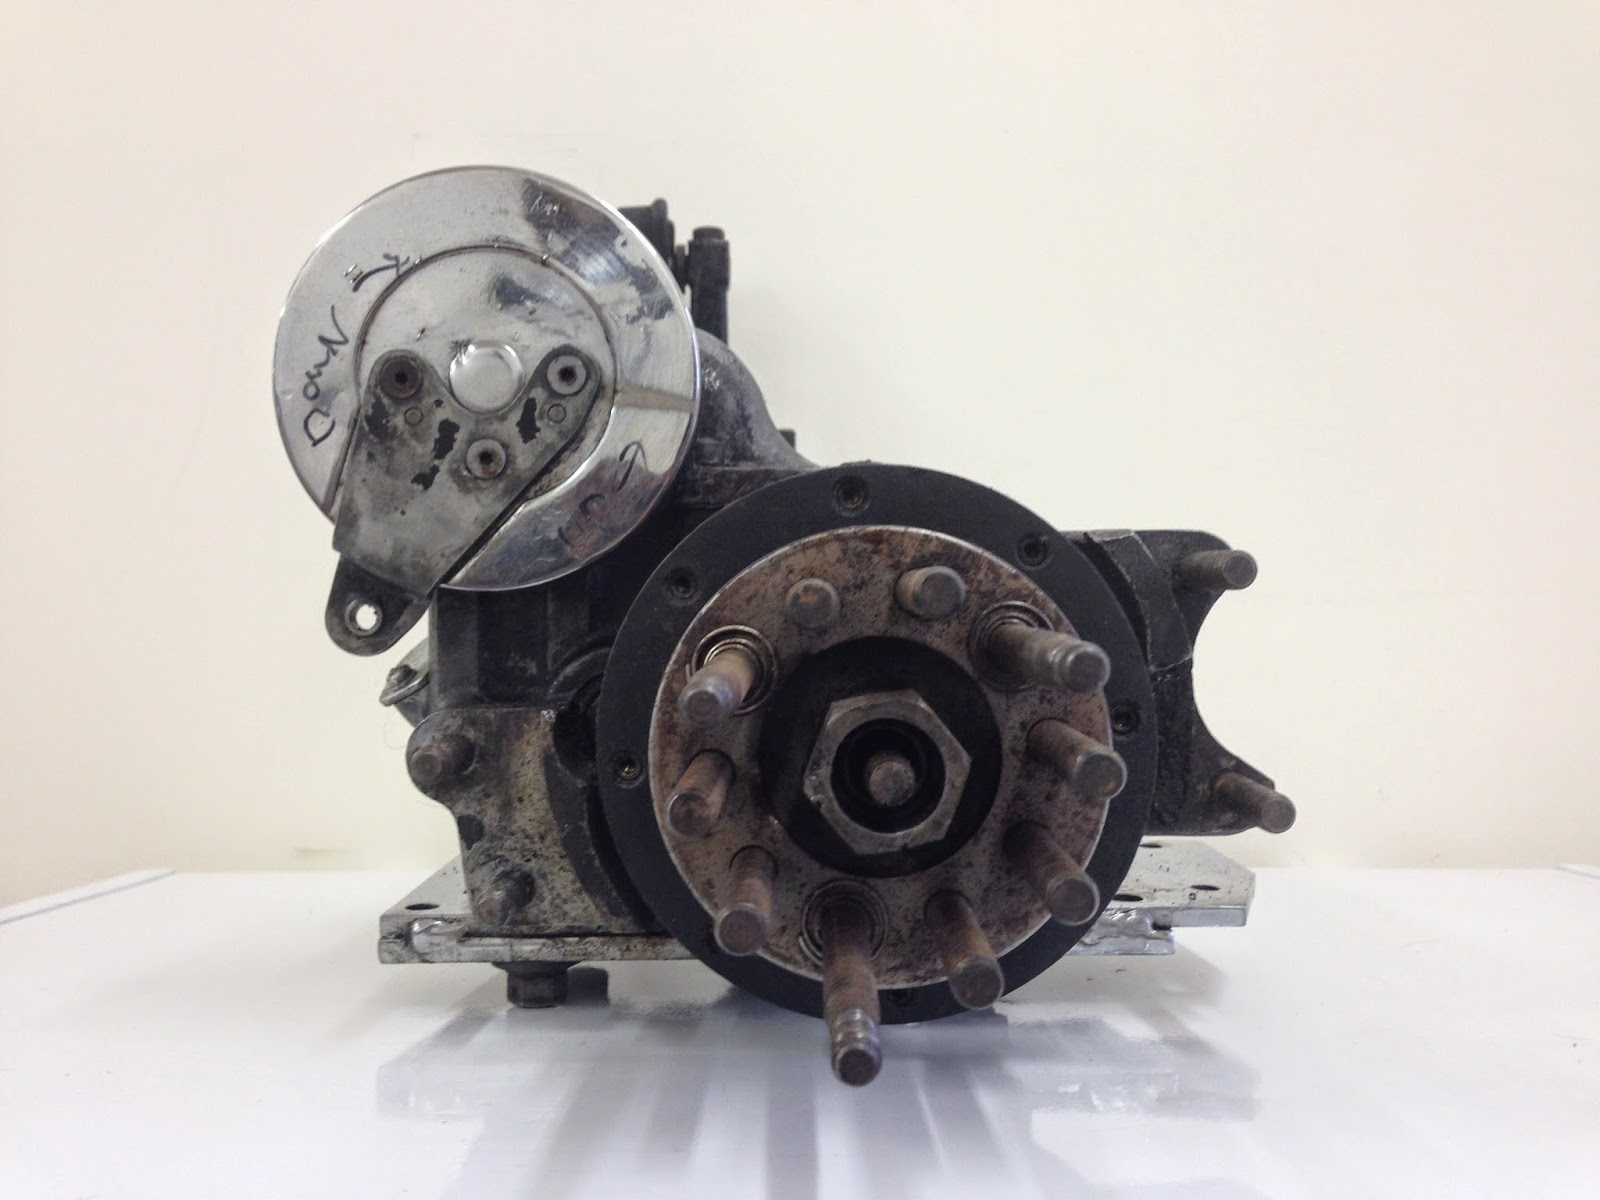 Transmissions For Sale Near Me >> 4 Speed Ratchet Top Transmission For Sale Squares Beware